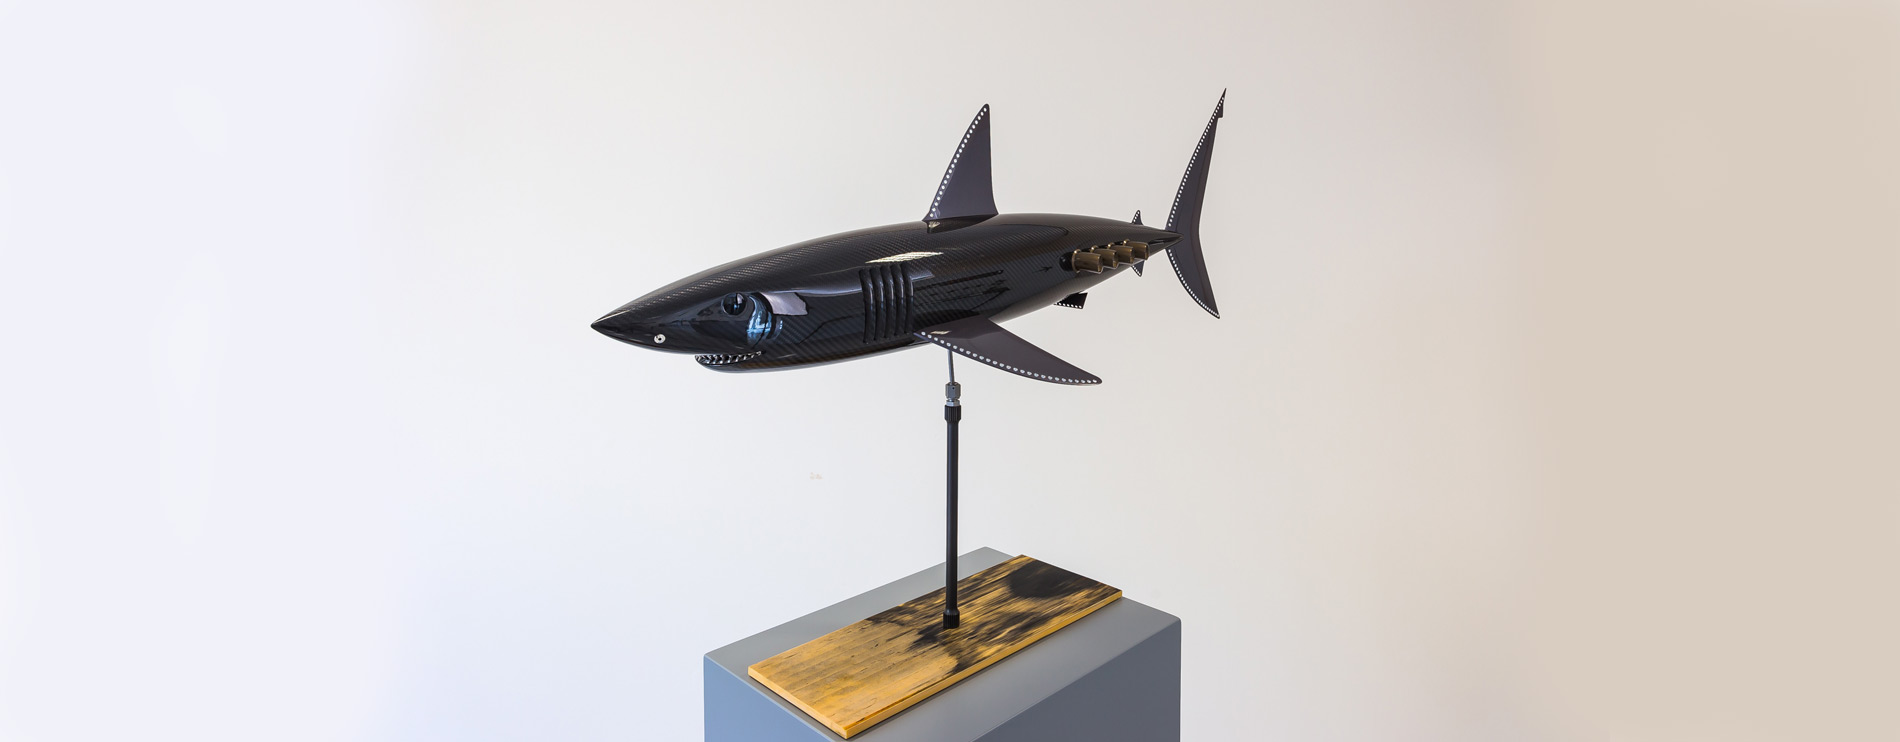 Carbon Fibre Mako Shark